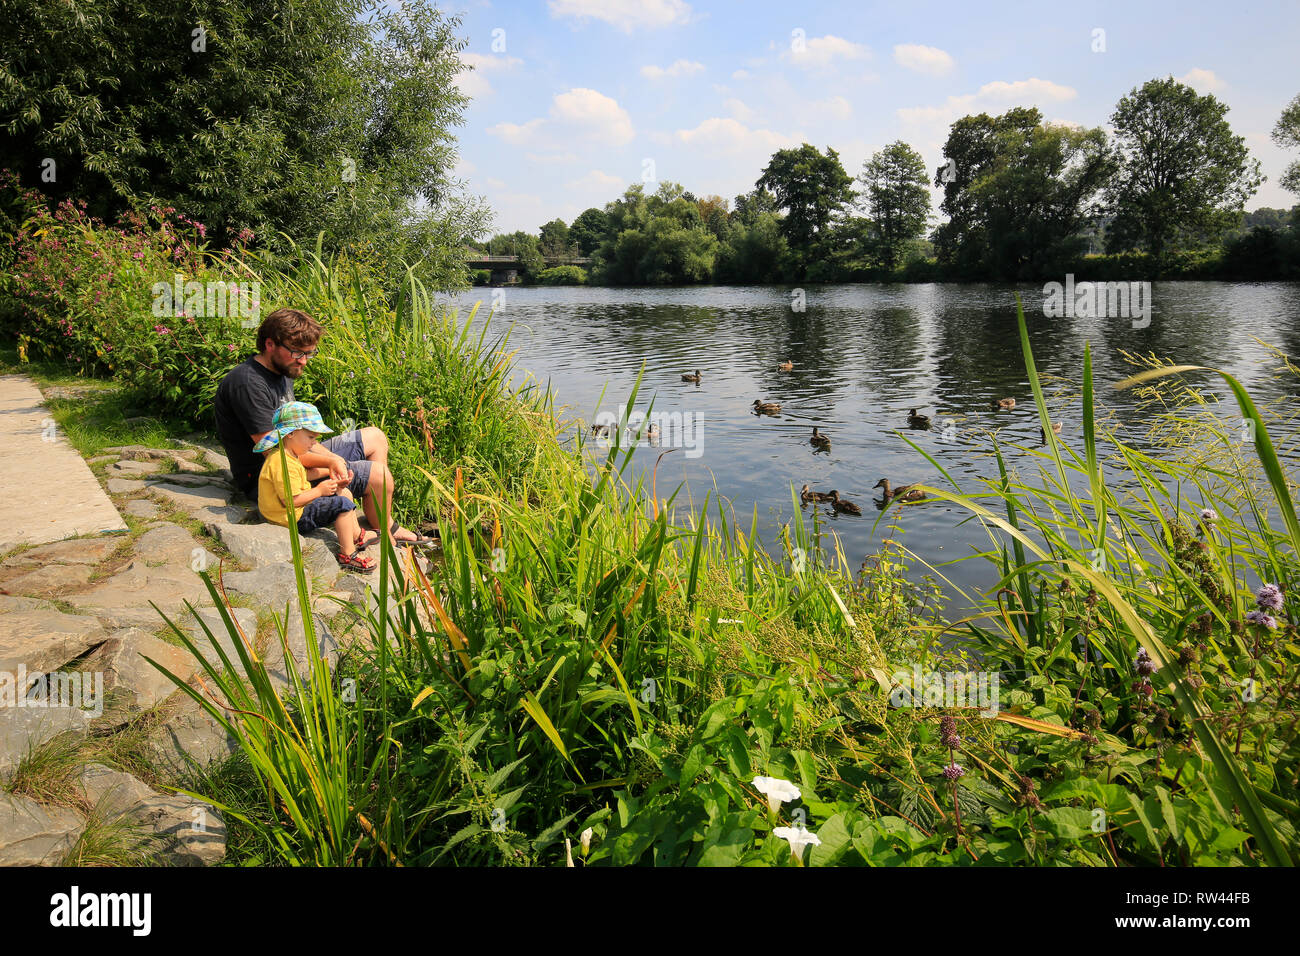 Essen, North Rhine-Westphalia, Ruhr area, Germany, Ruhr promenade in the Steele district, father and son sit on the banks of the Ruhr and feed ducks,  - Stock Image